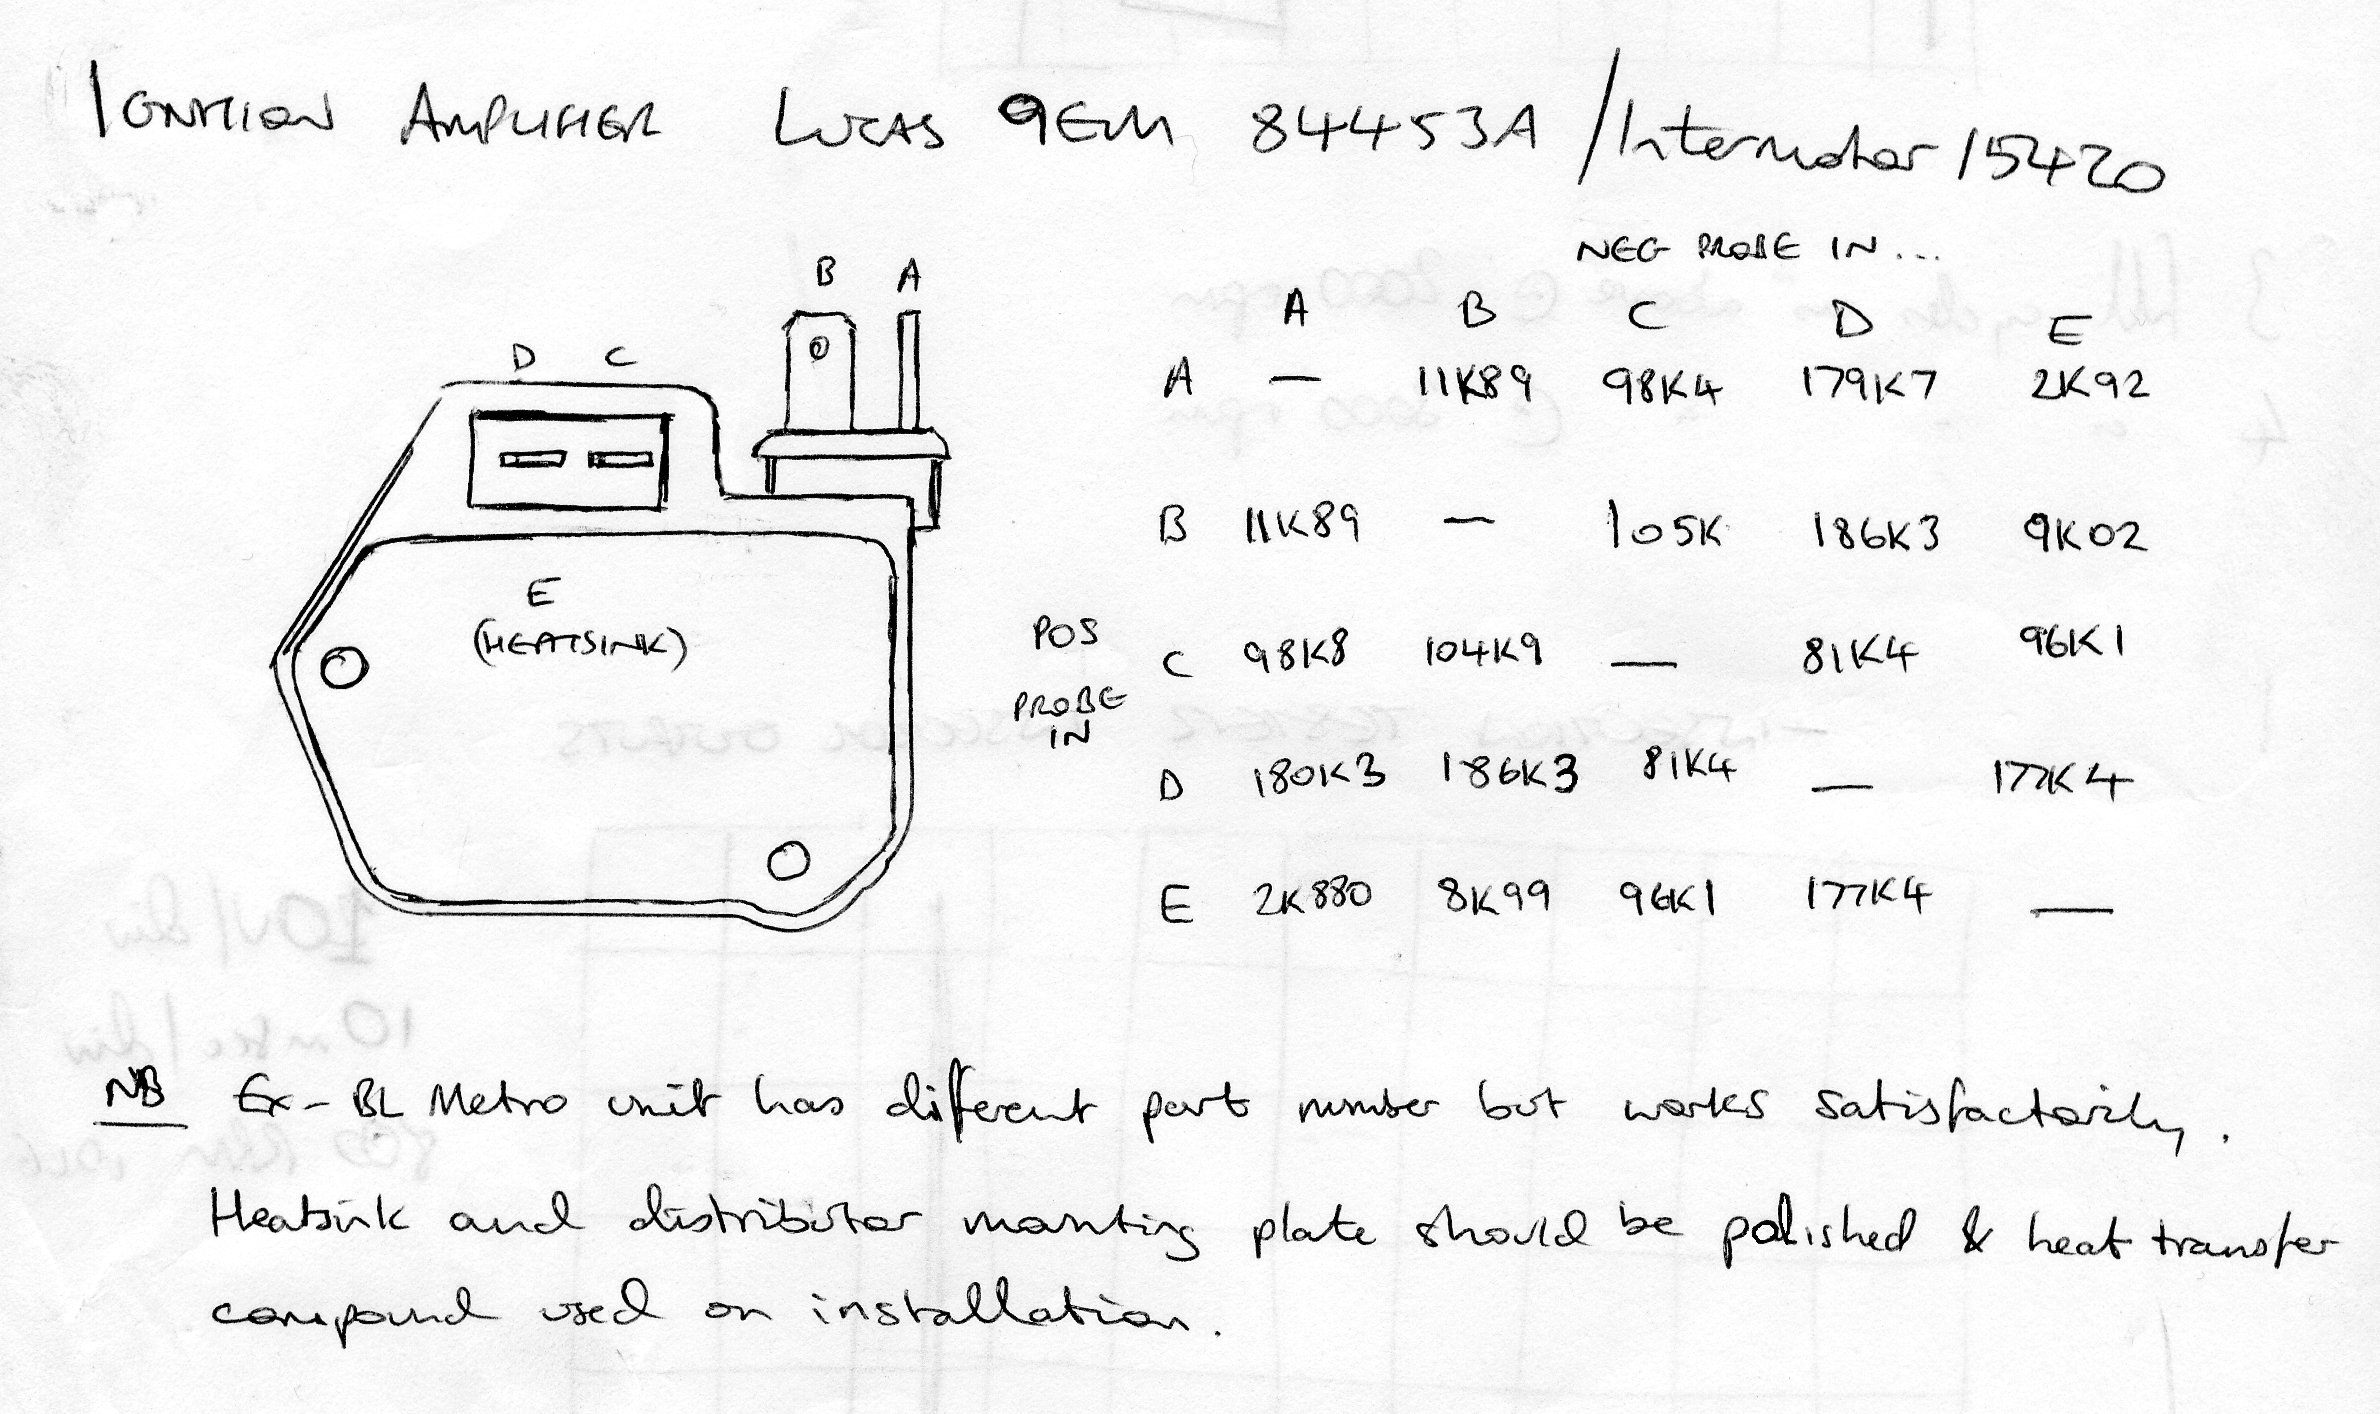 Ignition Amp Testing Still Wont Start Page 2 Wedges Rover Sd1 Wiring Diagram Edited By Wedg1e On Monday 30th March 2102